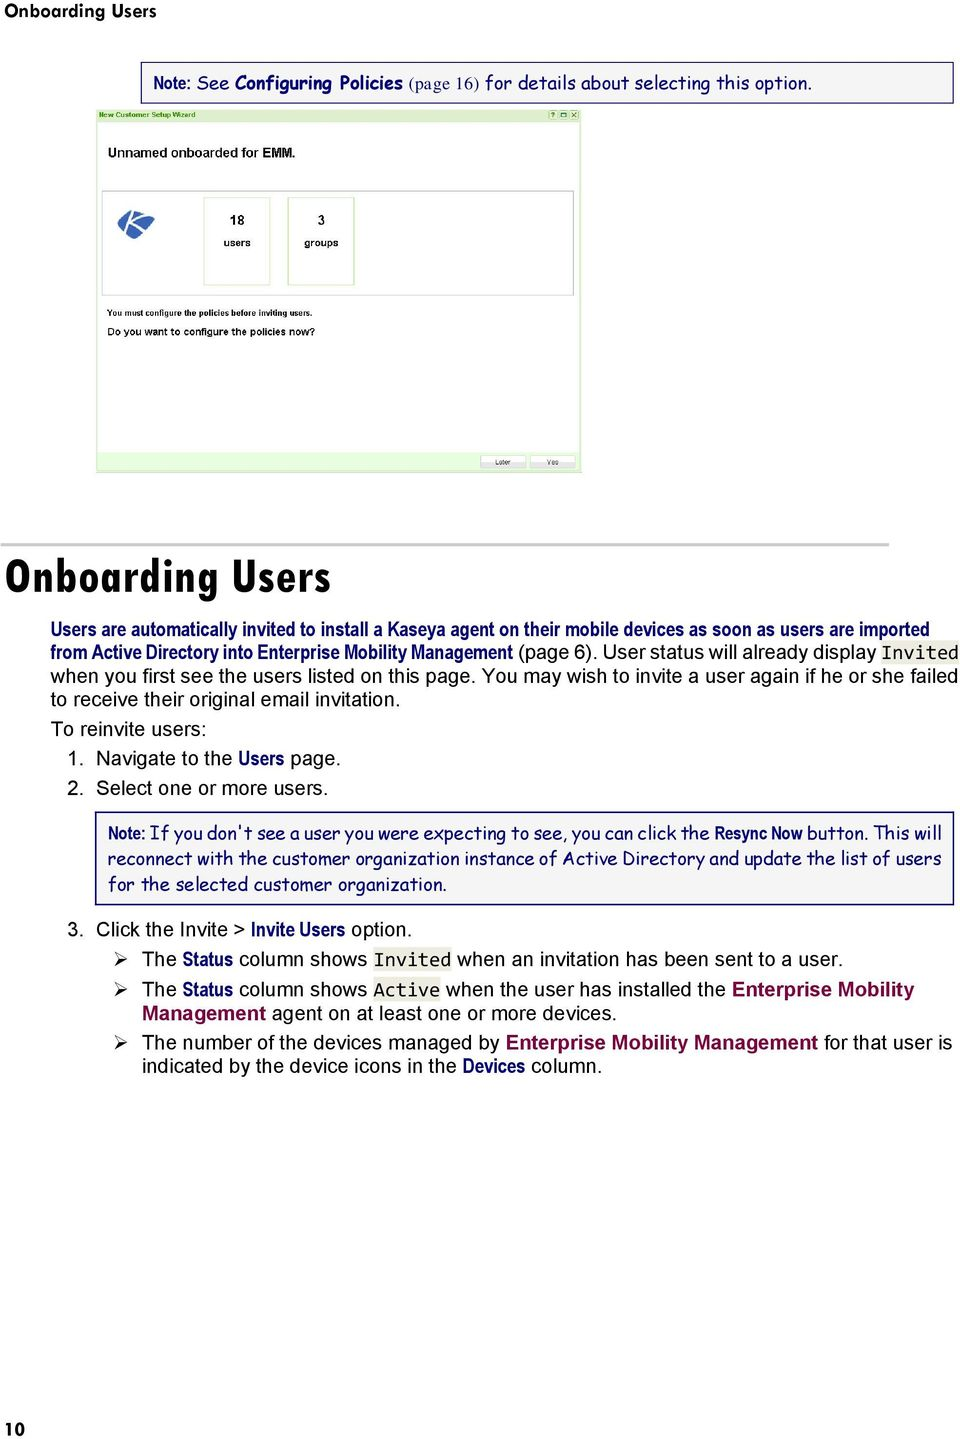 User status will already display Invited when you first see the users listed on this page. You may wish to invite a user again if he or she failed to receive their original email invitation.